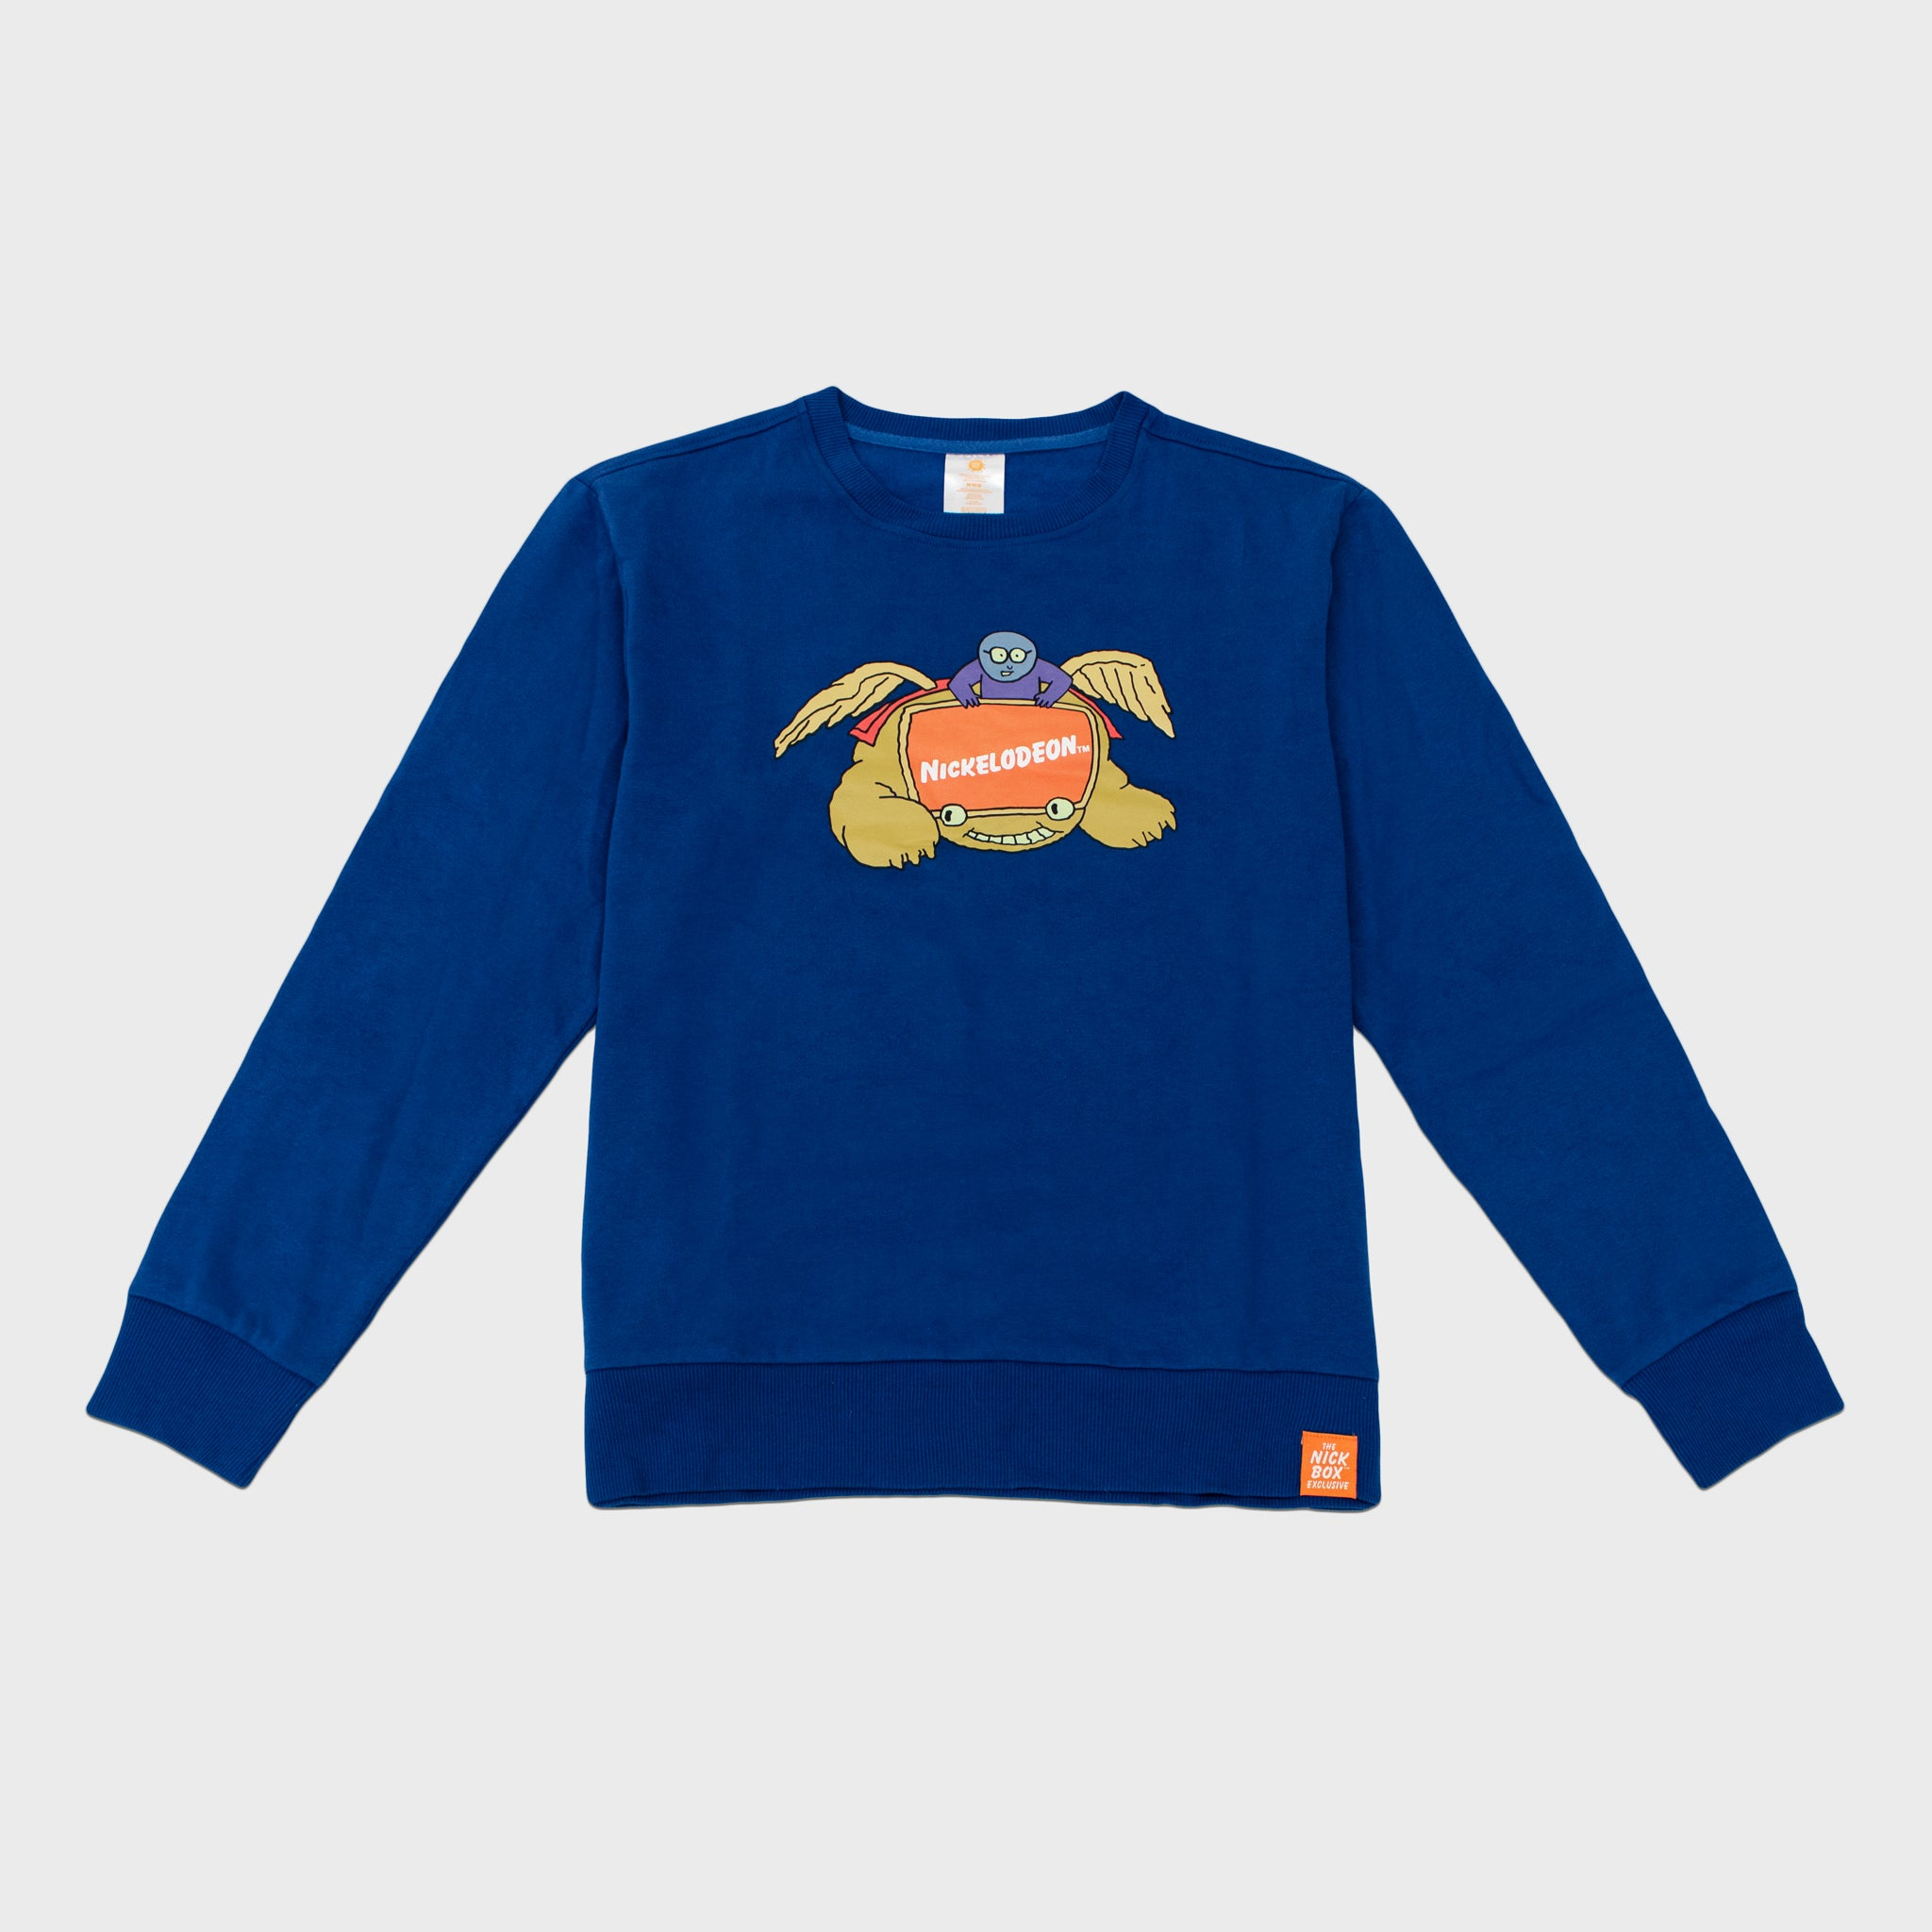 the nick box nickelodeon 90s kids 90s cartoons nostalgia throwback nostalgic classic subscription quarterly exclusive limited edition collectible apparel sweatshirt crewneckculturefly